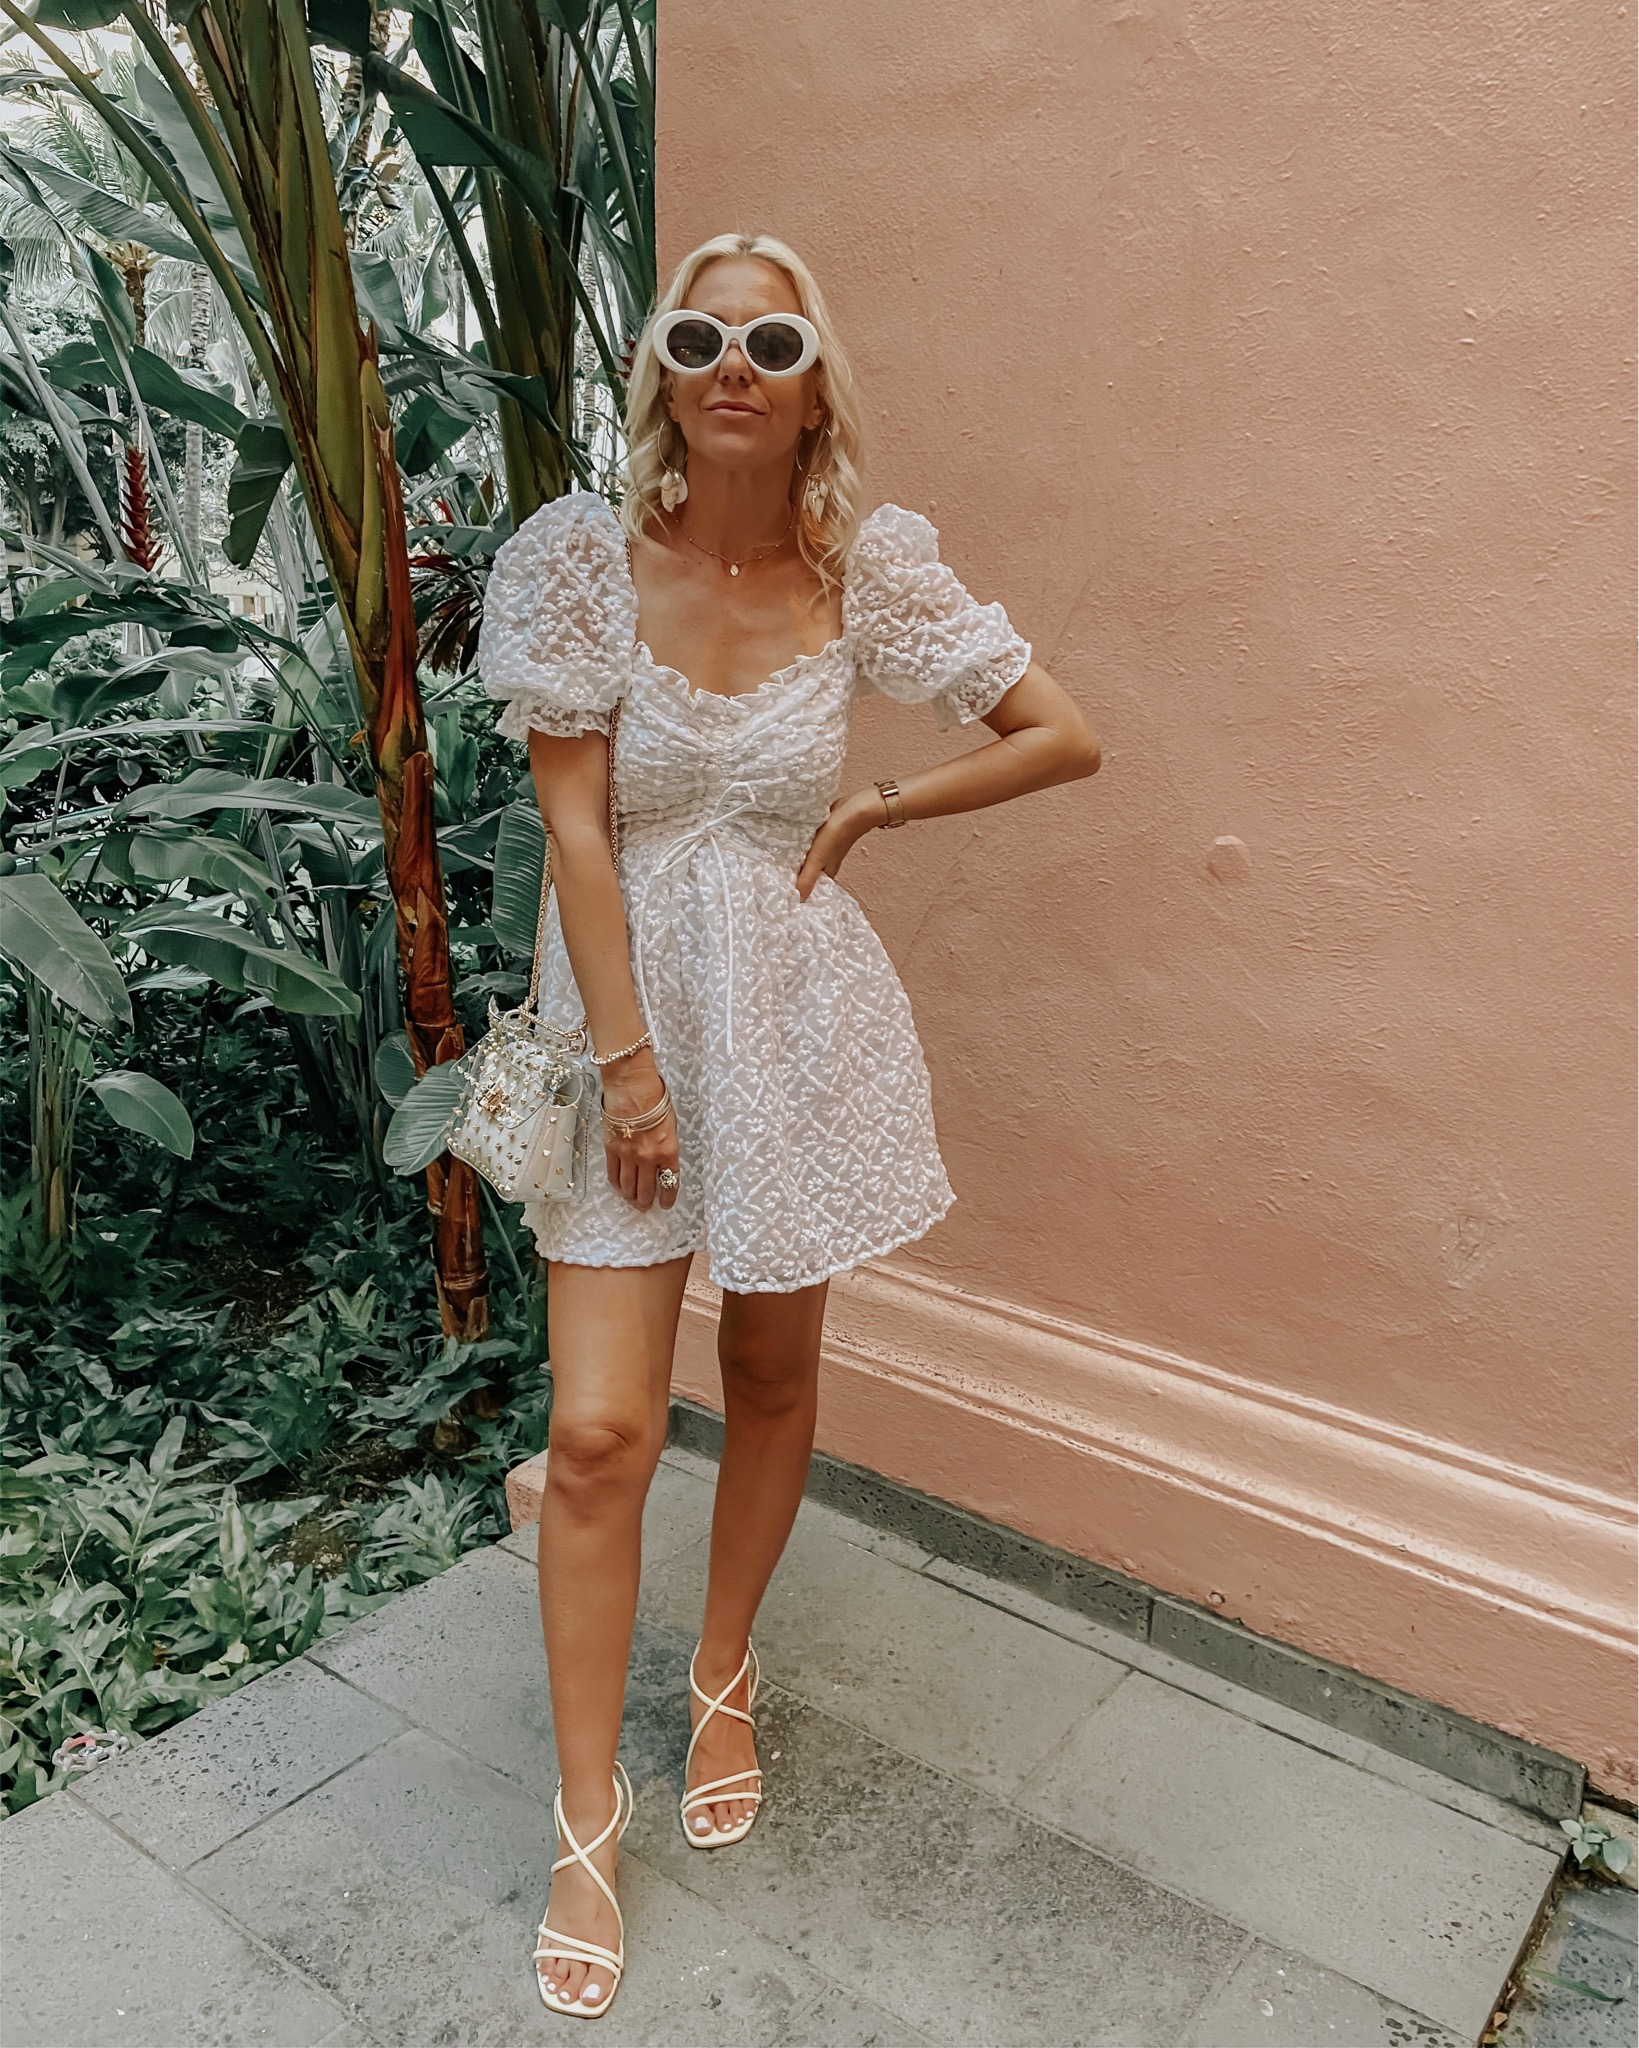 MUST-HAVE WHITE DRESSES FOR SPRING- Jaclyn De Leon Style- If there's one item you need for Spring + Summer it's a cute white dress! I'm rounding up the best white dresses from affordable finds to must have splurges.